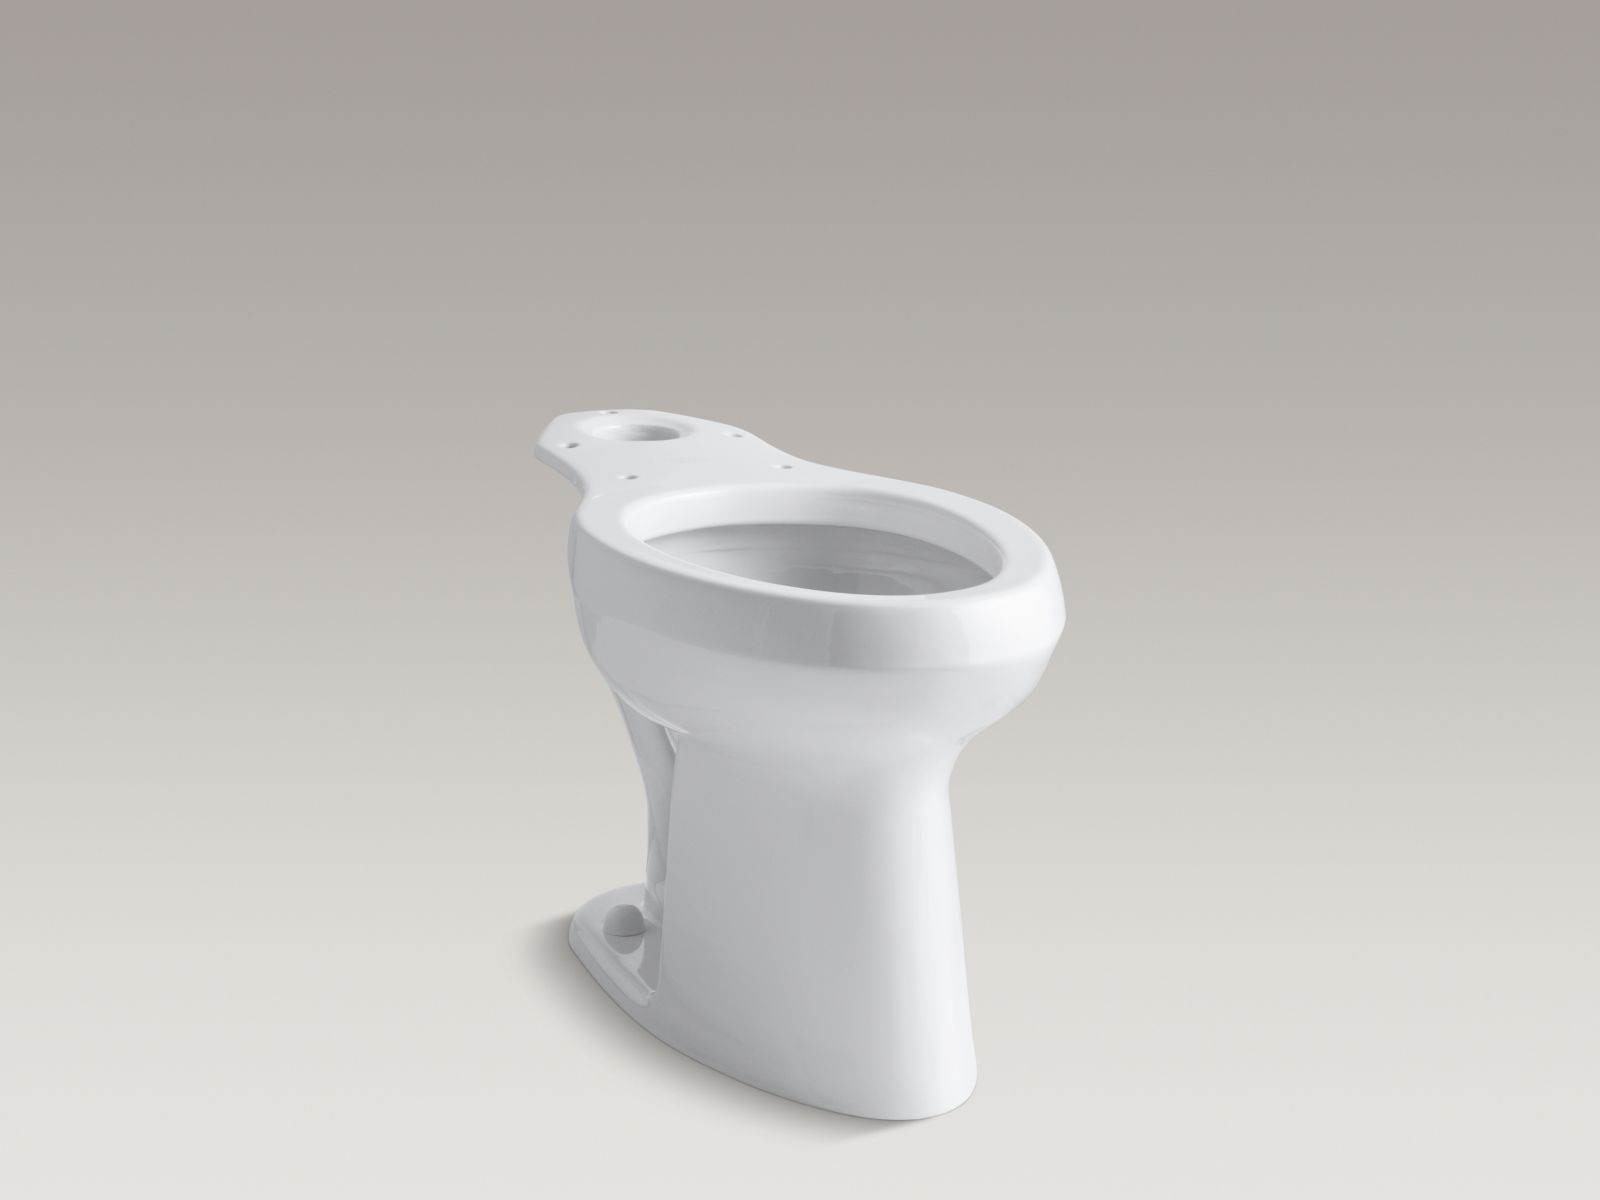 Kohler K-4304-L-0 Highline Elongated Toilet Bowl with Pressure Lite Technology and Bedpan Lugs White